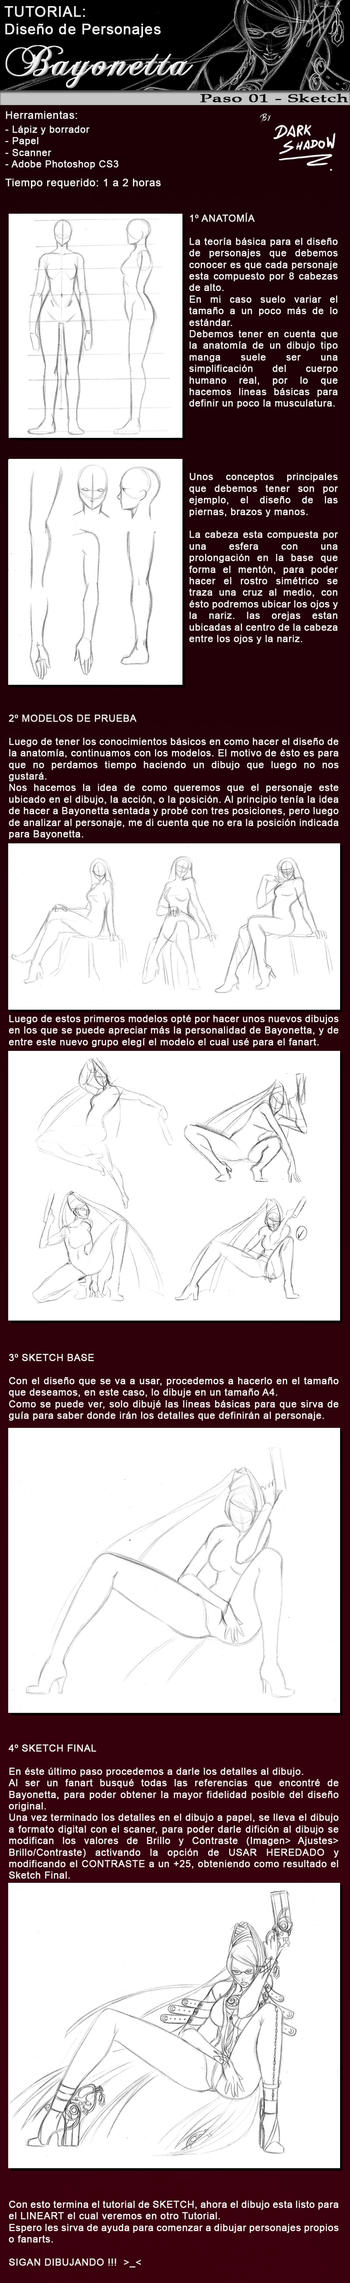 TUTORIAL 01 - SKETCH BAYONETTA by darkshadowartworks